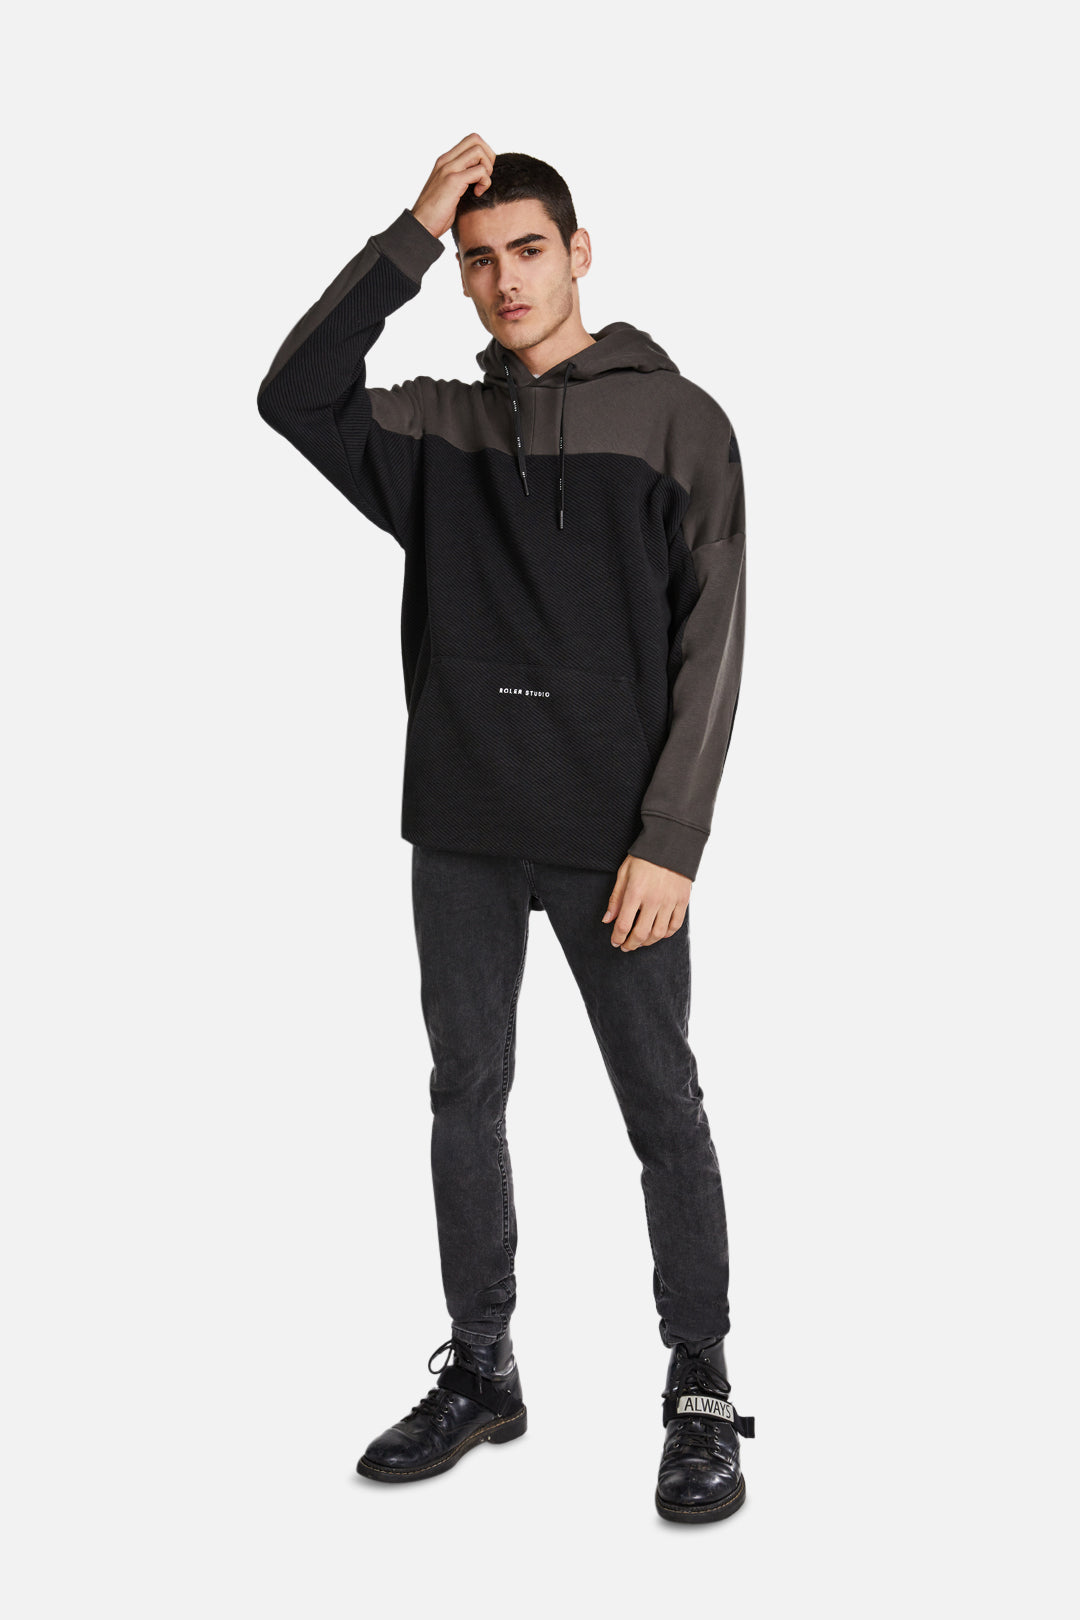 The Melli Hoodie - Black/Evergreen - Roler Clothing